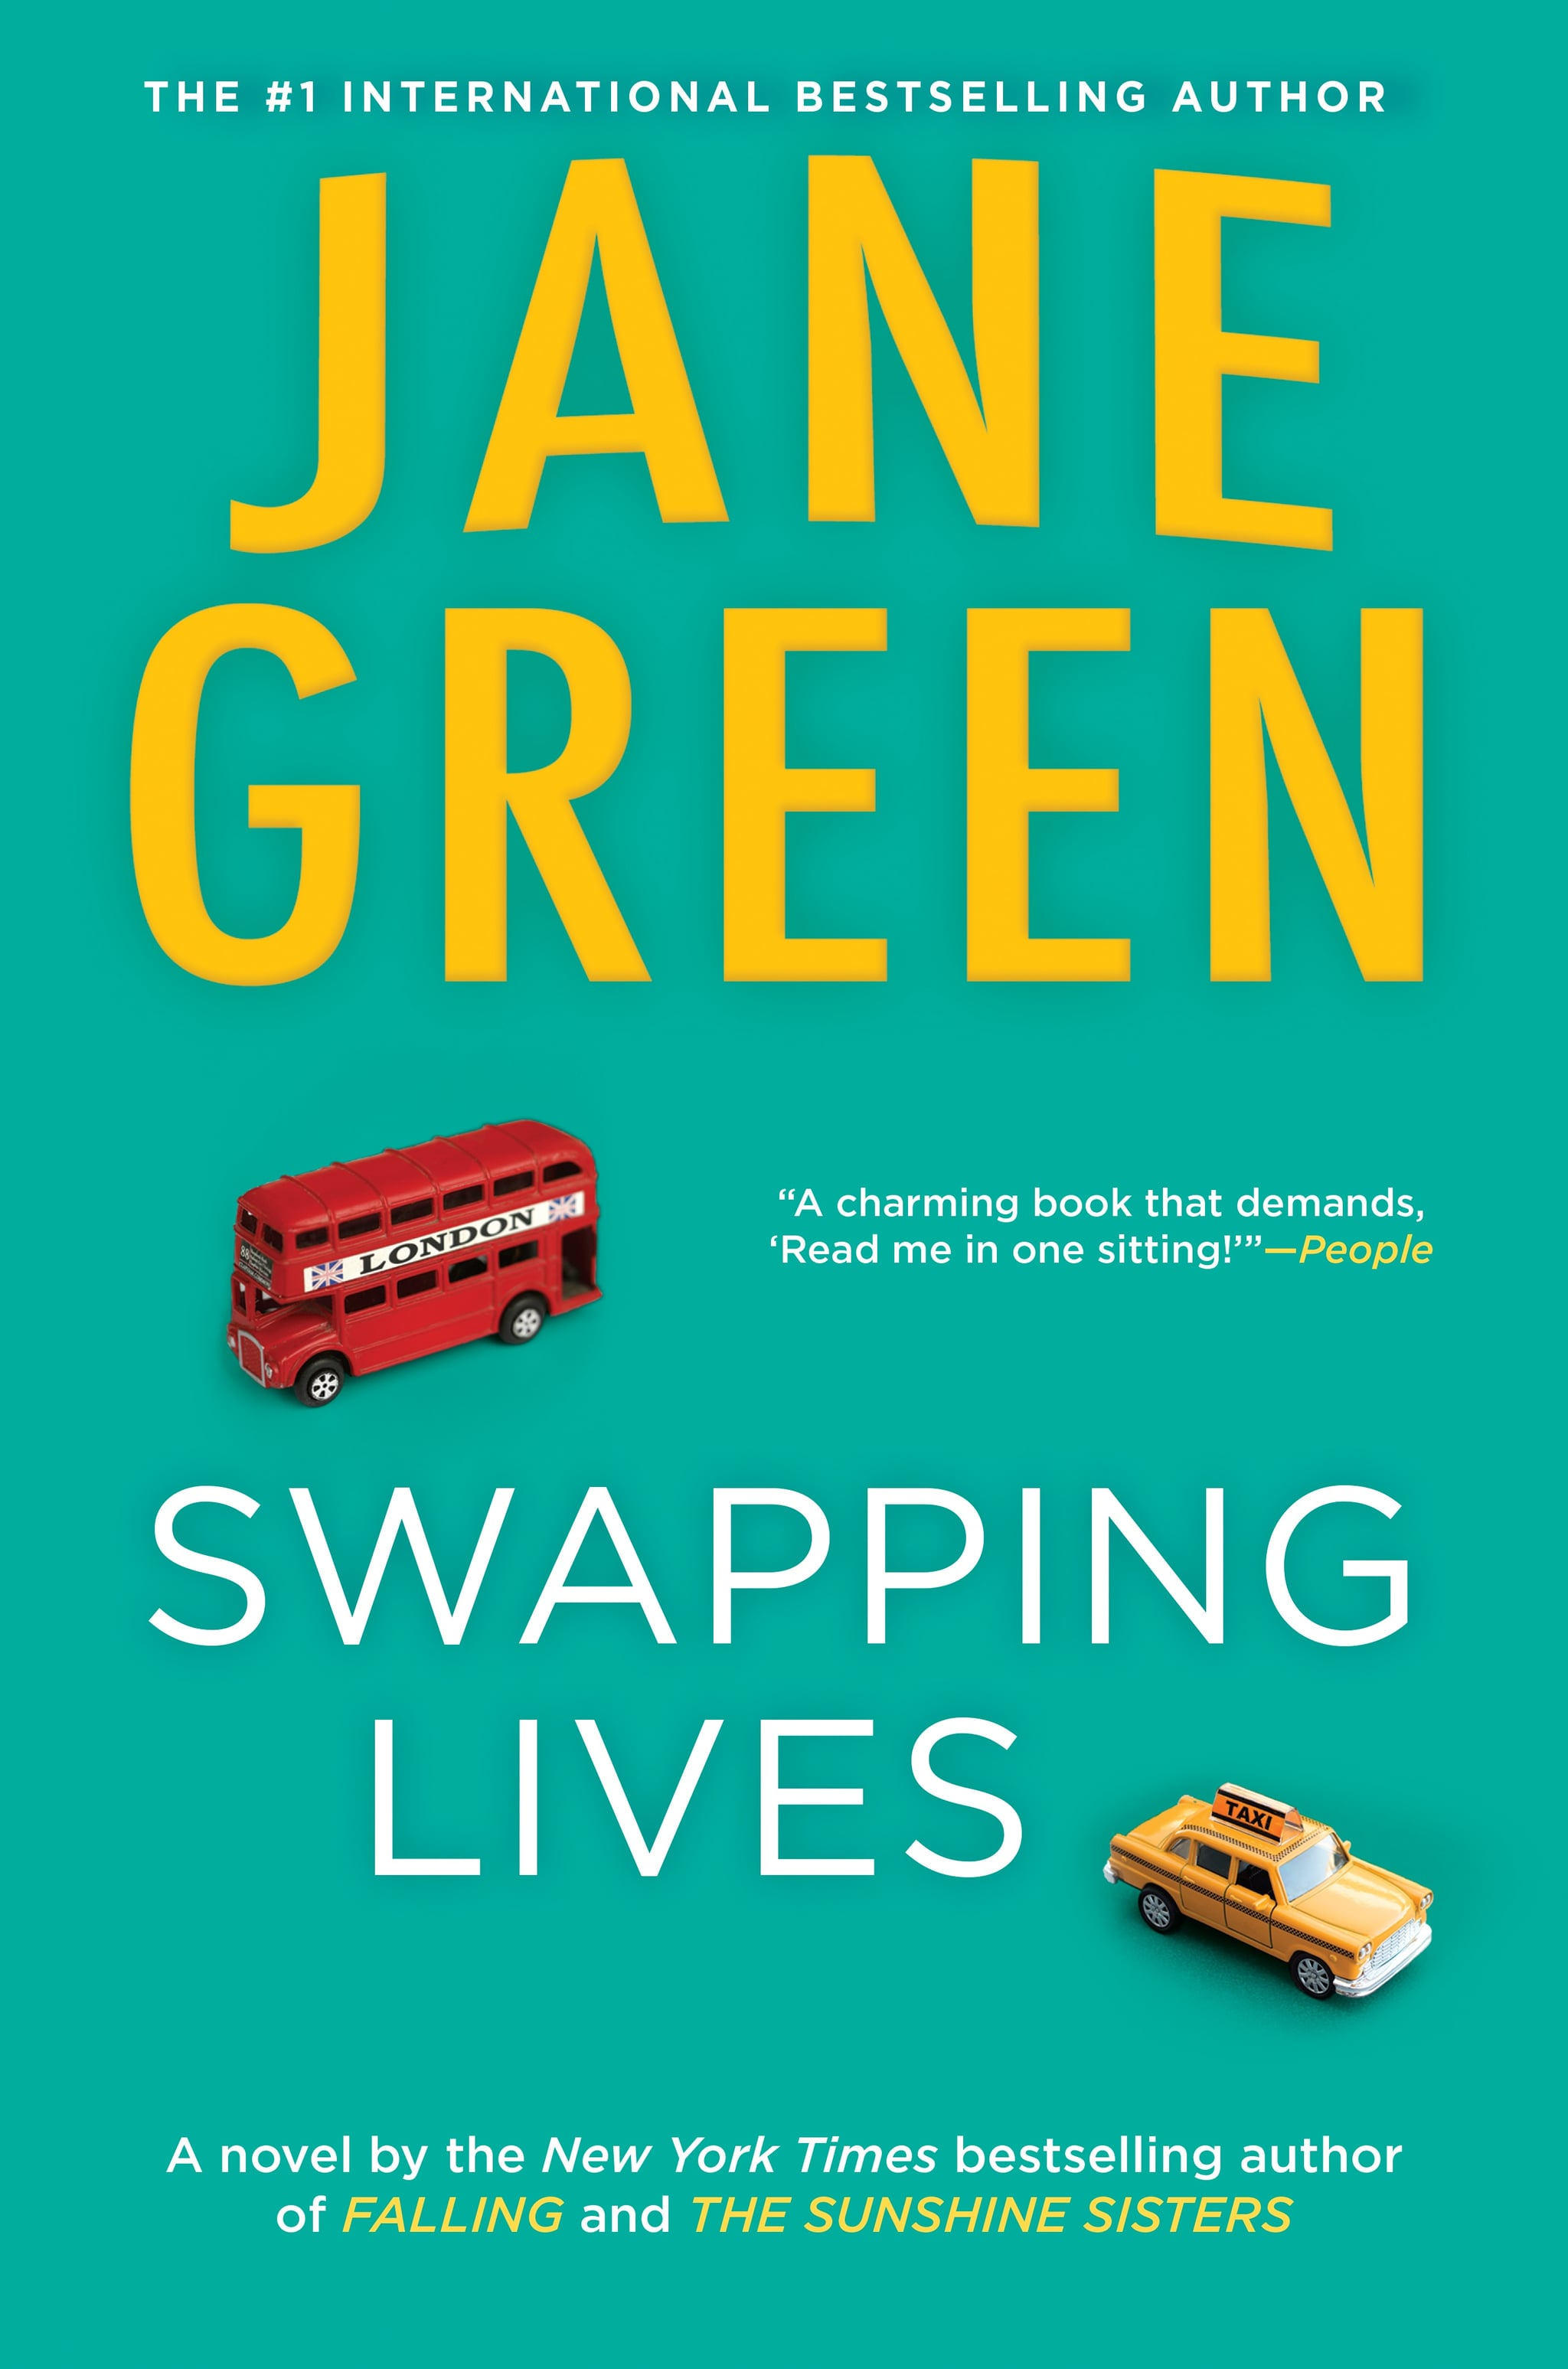 Swapping Lives Just Dipping Your Toe Into Jane Green Books